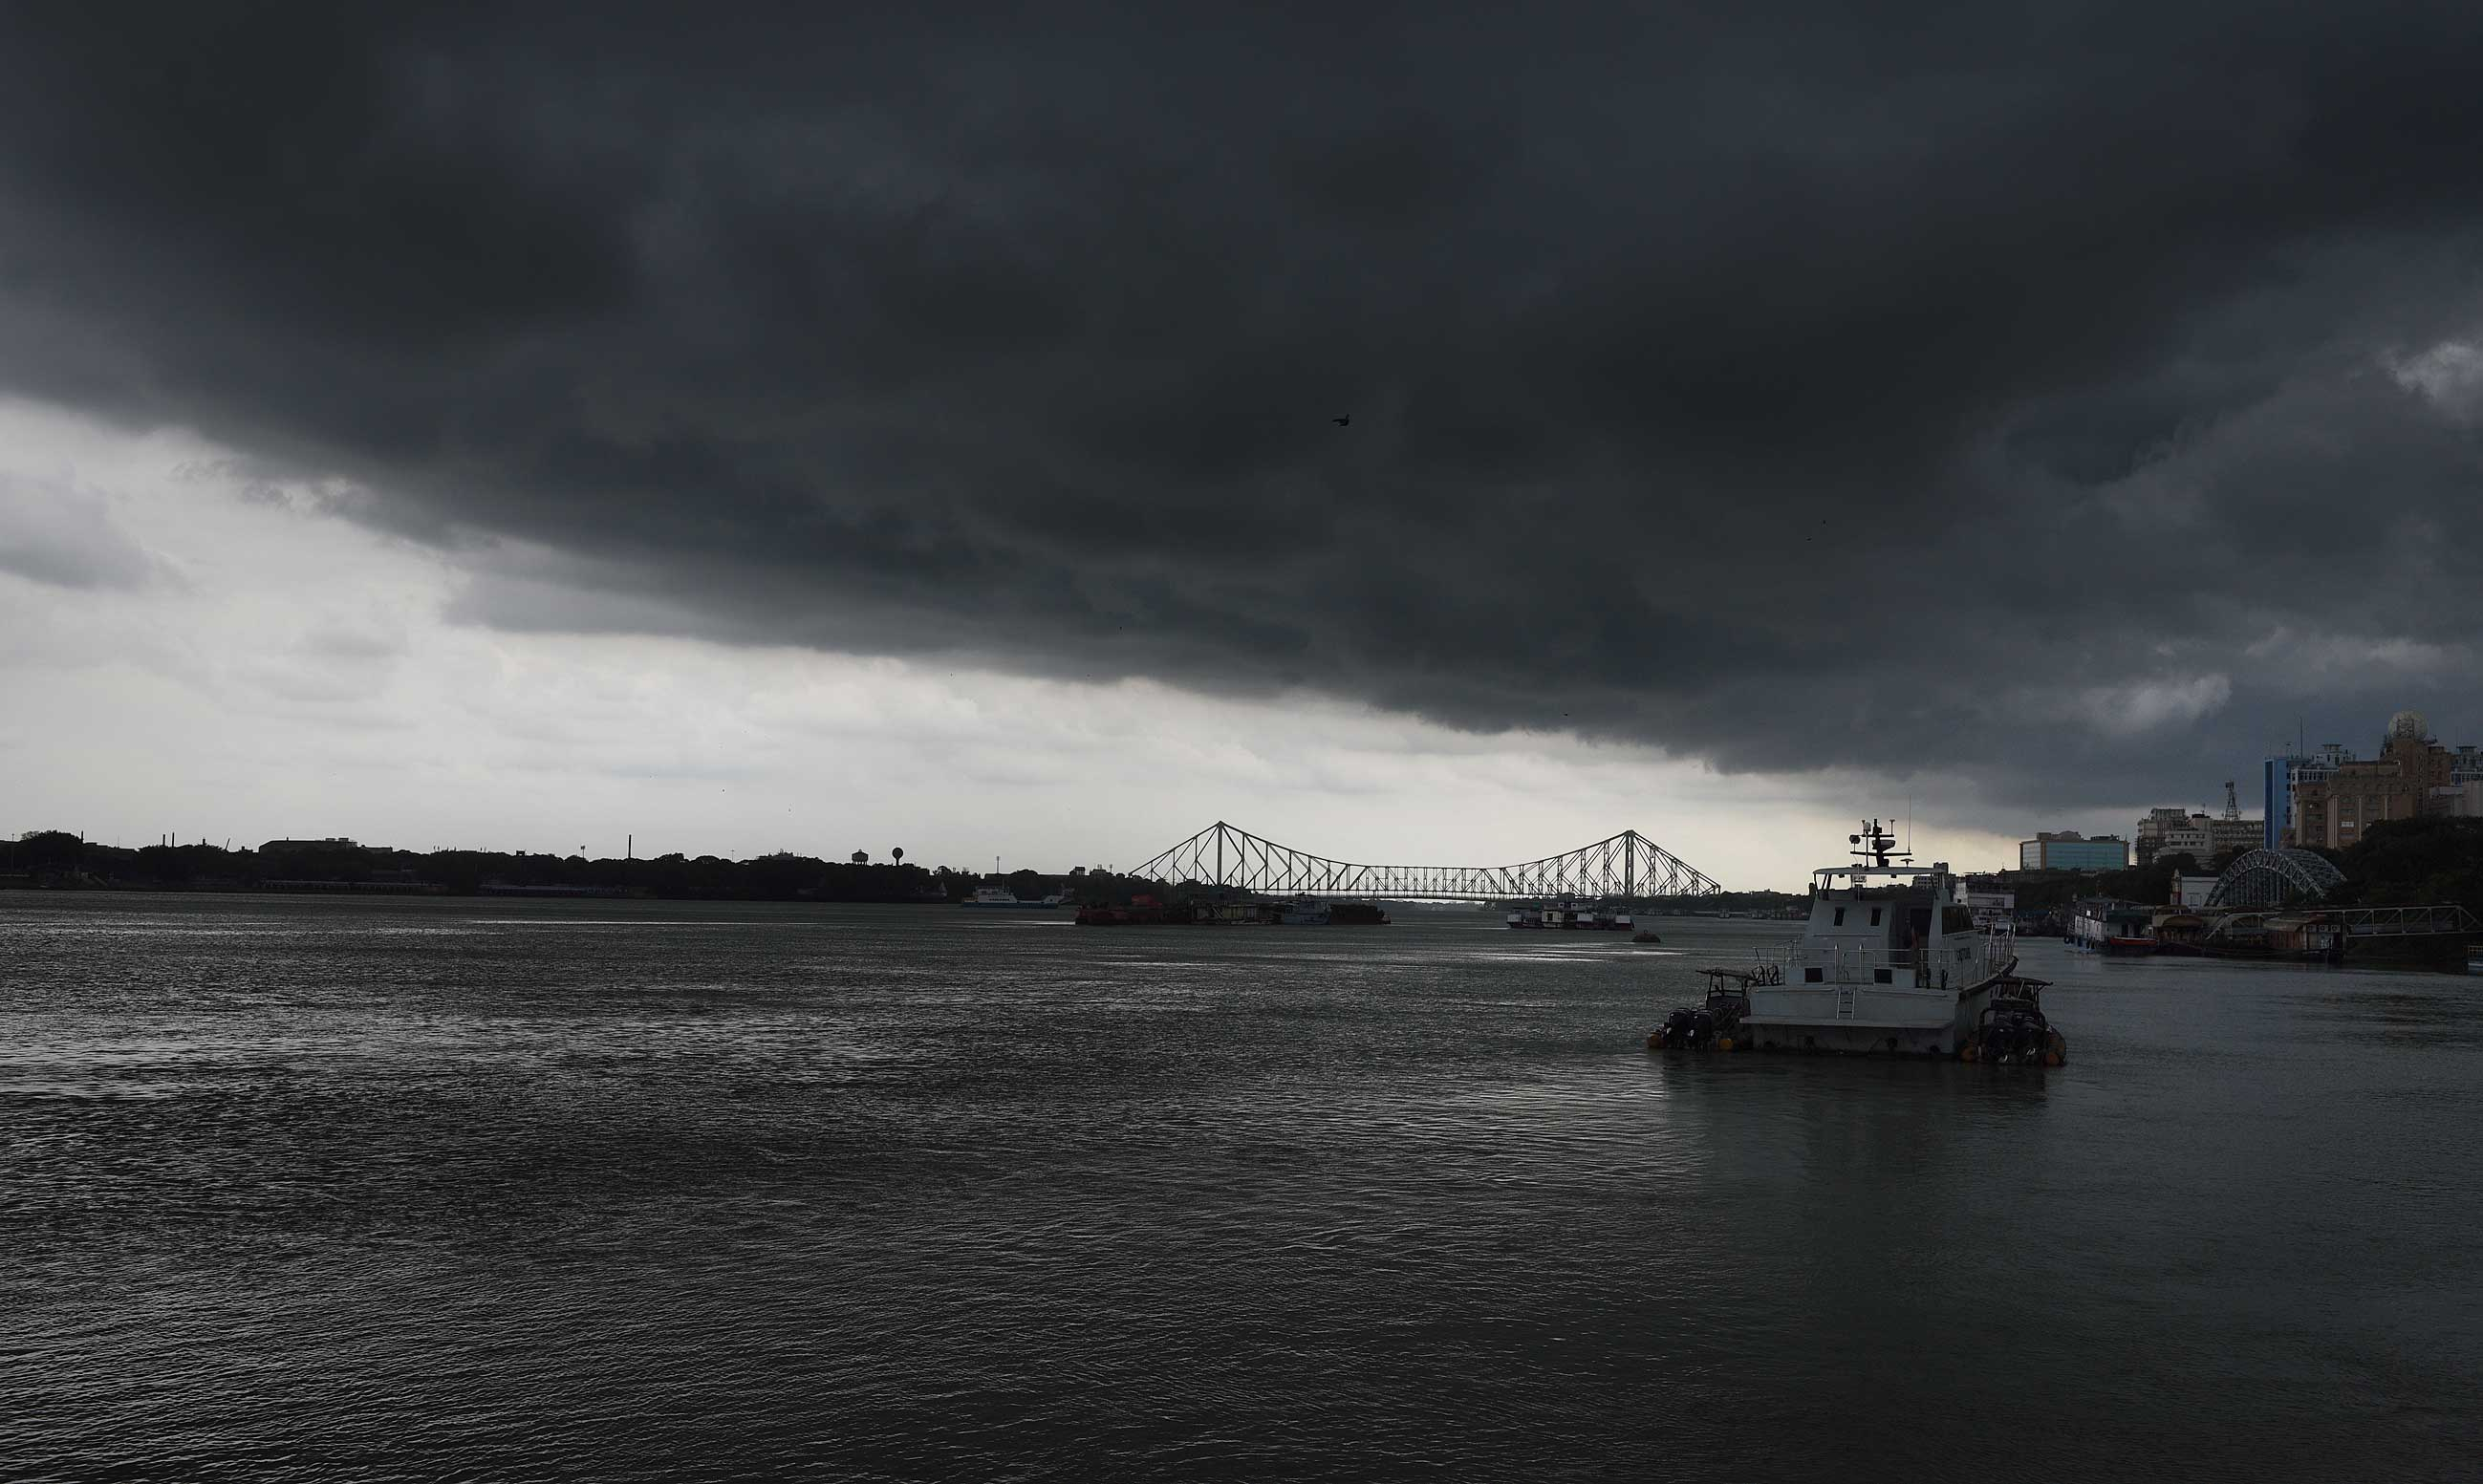 The forecast till Sunday is light to moderate rain in most parts of south Bengal, including in Calcutta, with occasional thunderstorms. Some parts of Murshidabad, Nadia and North and South 24-Parganas can get heavy rain, the Met office has said.